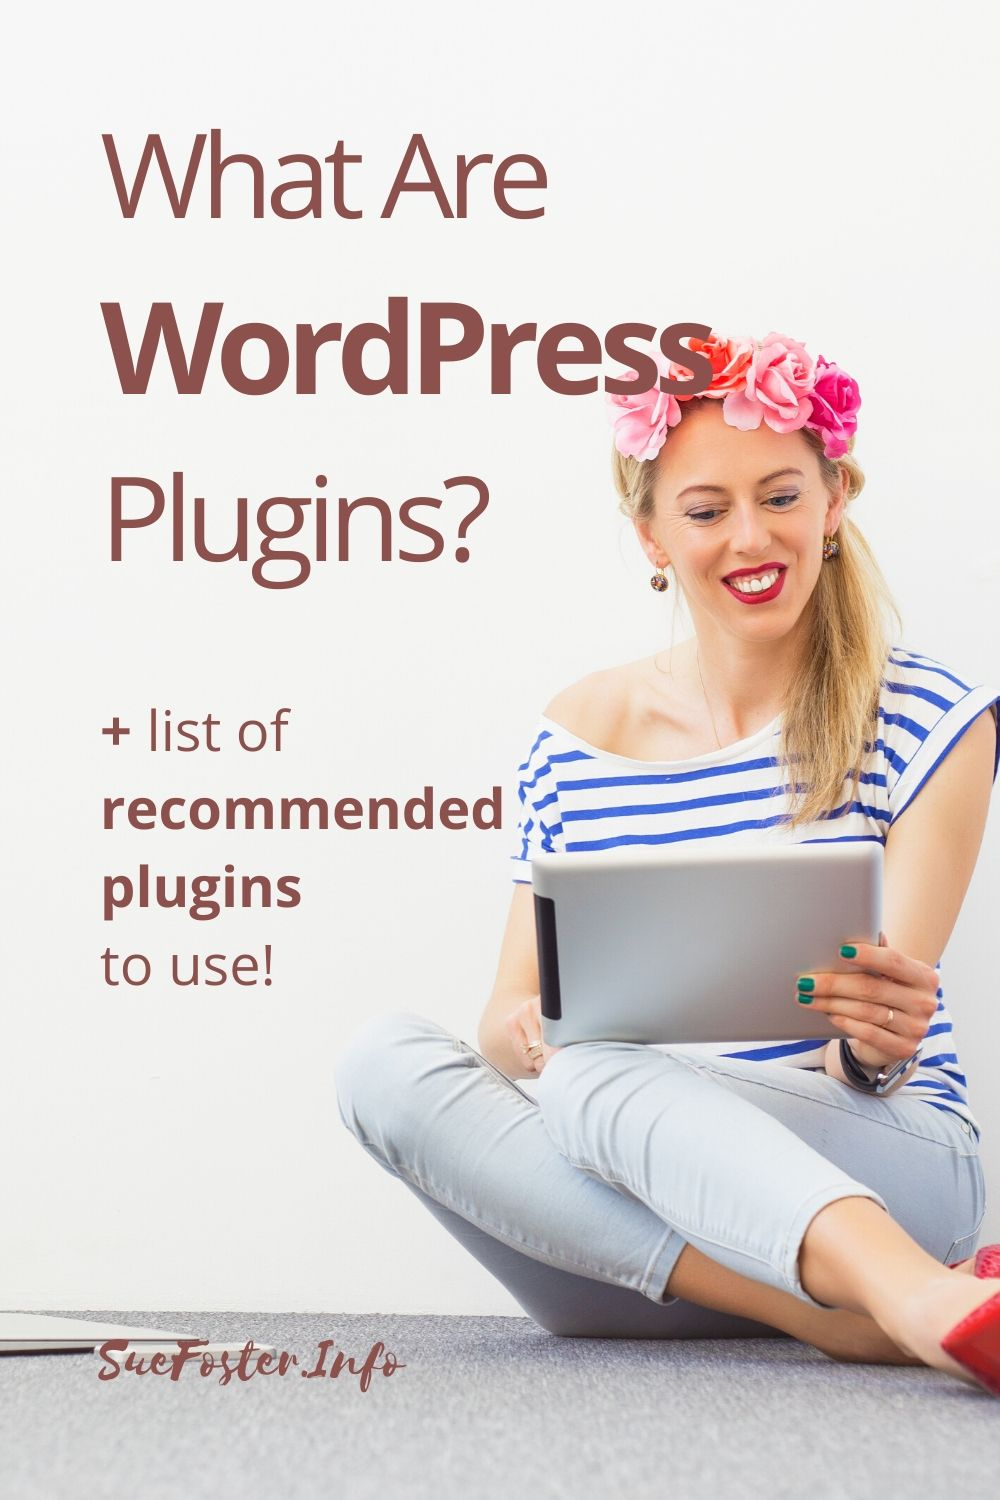 Find out what WordPress plugins are and the best ones to use.